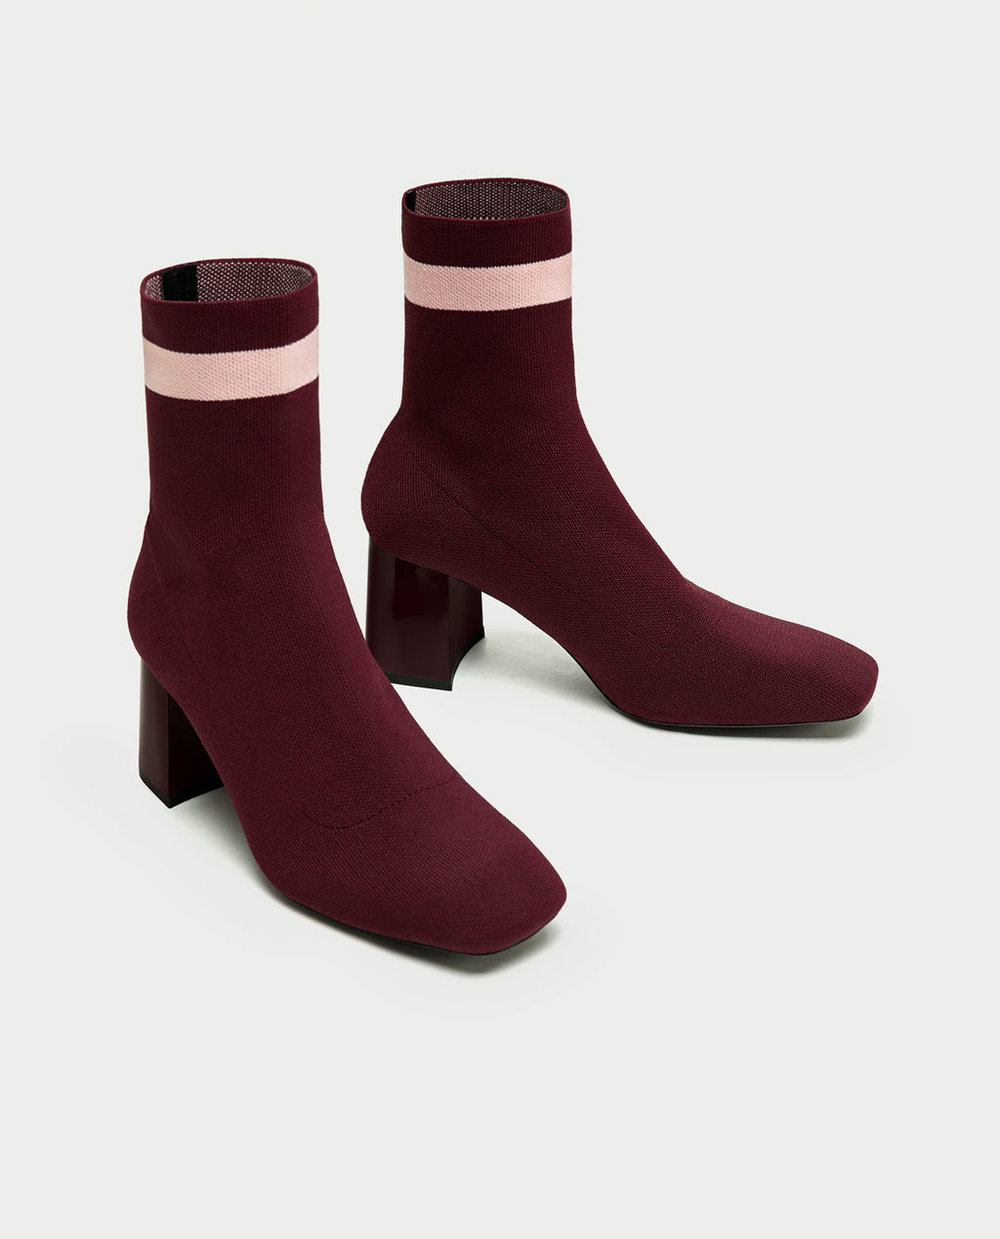 Trend Spotting - The Stretchy Sock Boot